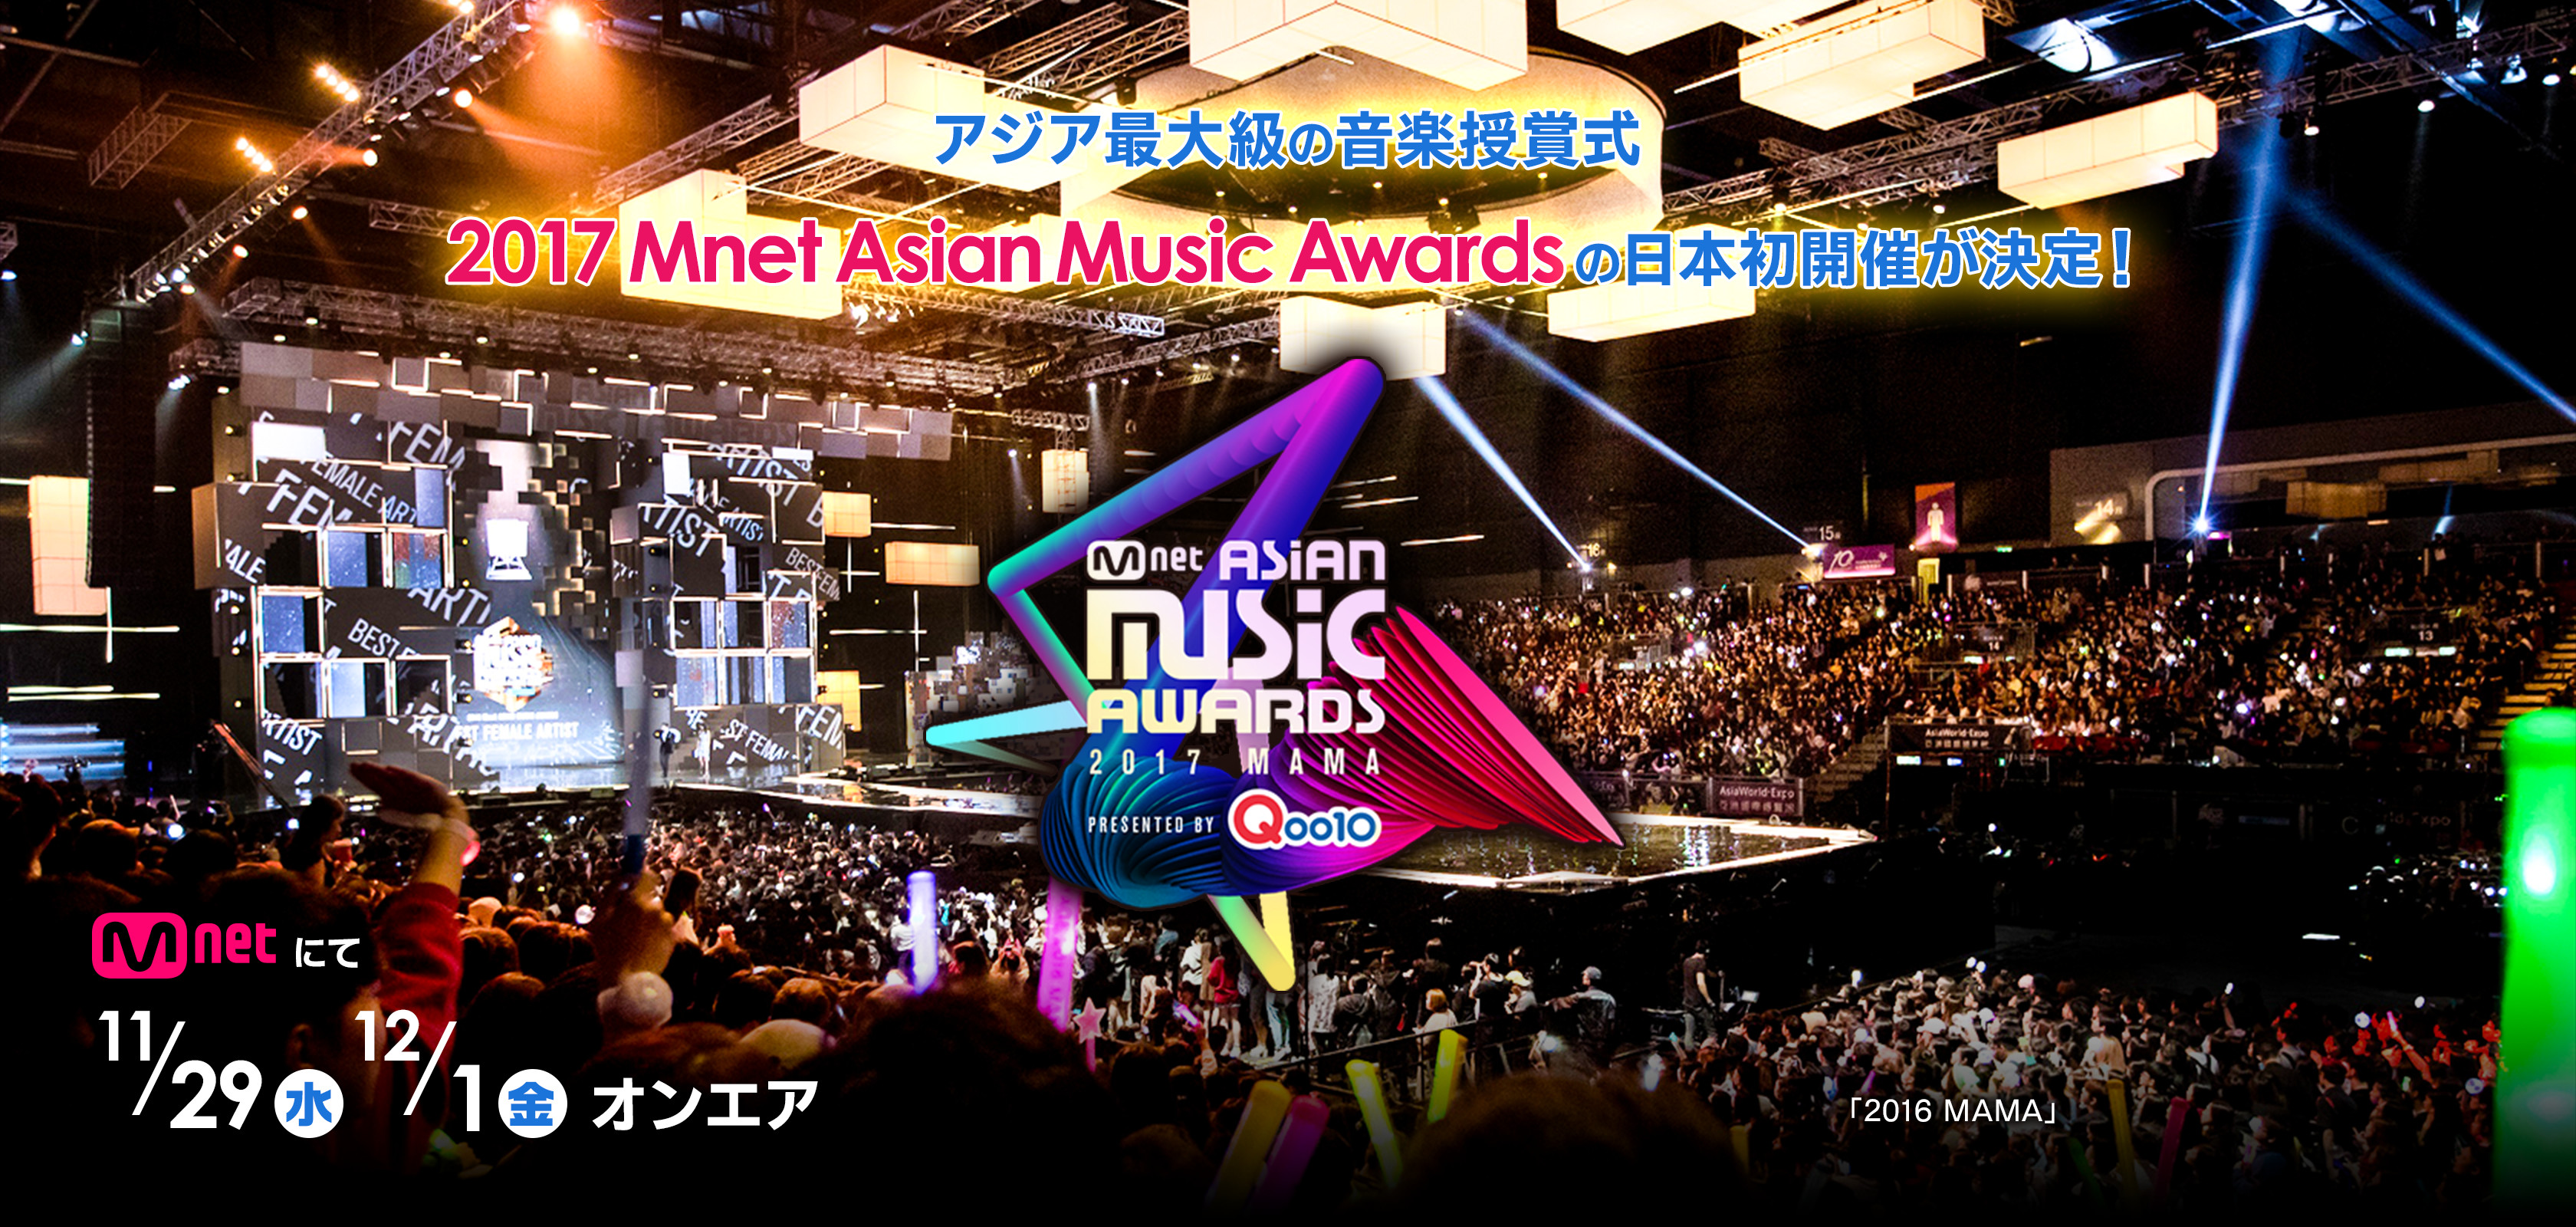 Mnet Asian Music Awards 2017 Presented by Qoo10 MAMA アジア最大級の音楽授賞式 2017 Mnet Asian Music Awardsの日本初開催が決定! Mnetにて11/29(水)12/1(金)オンエア 「2016 MAMA」 ©CJ E&M Corporation, all rights reserved